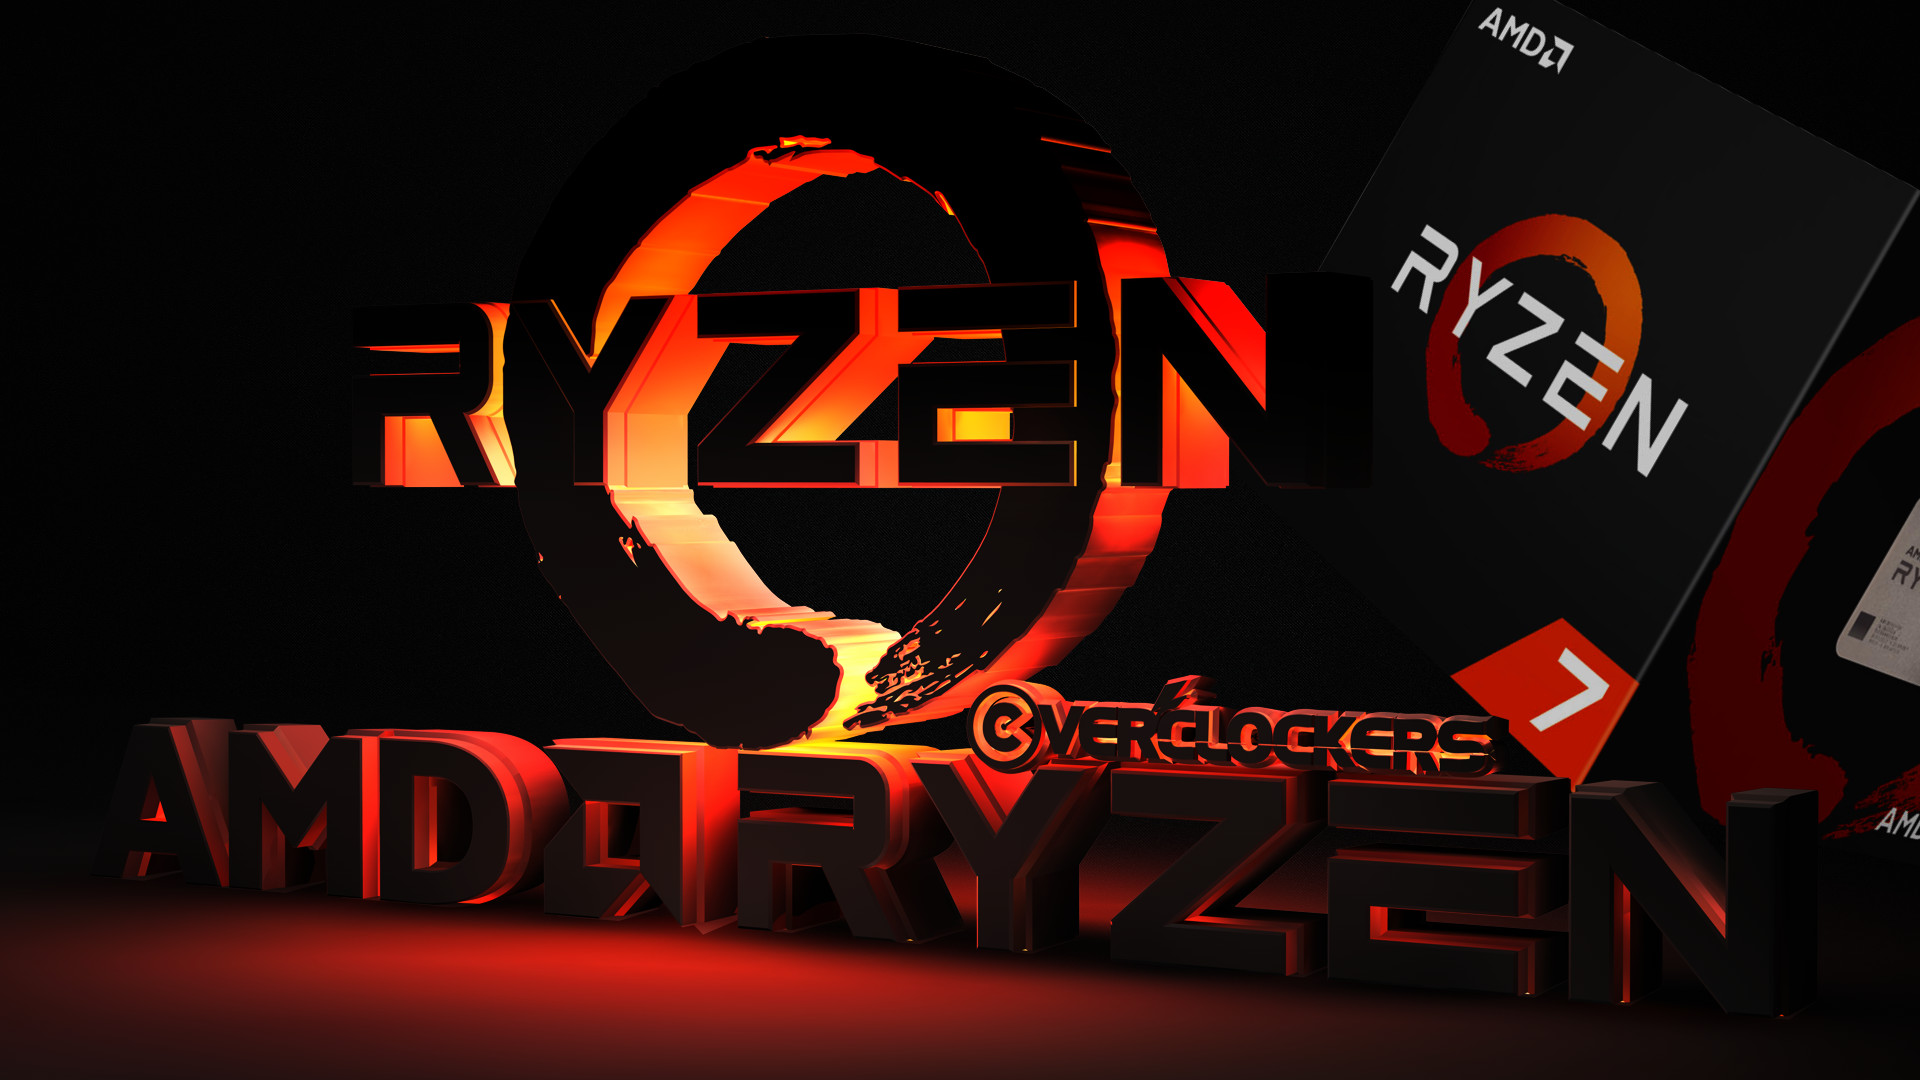 Res: 1920x1080, Name: AMD RYZEN.png Views: 7984 Size: 1.55 MB